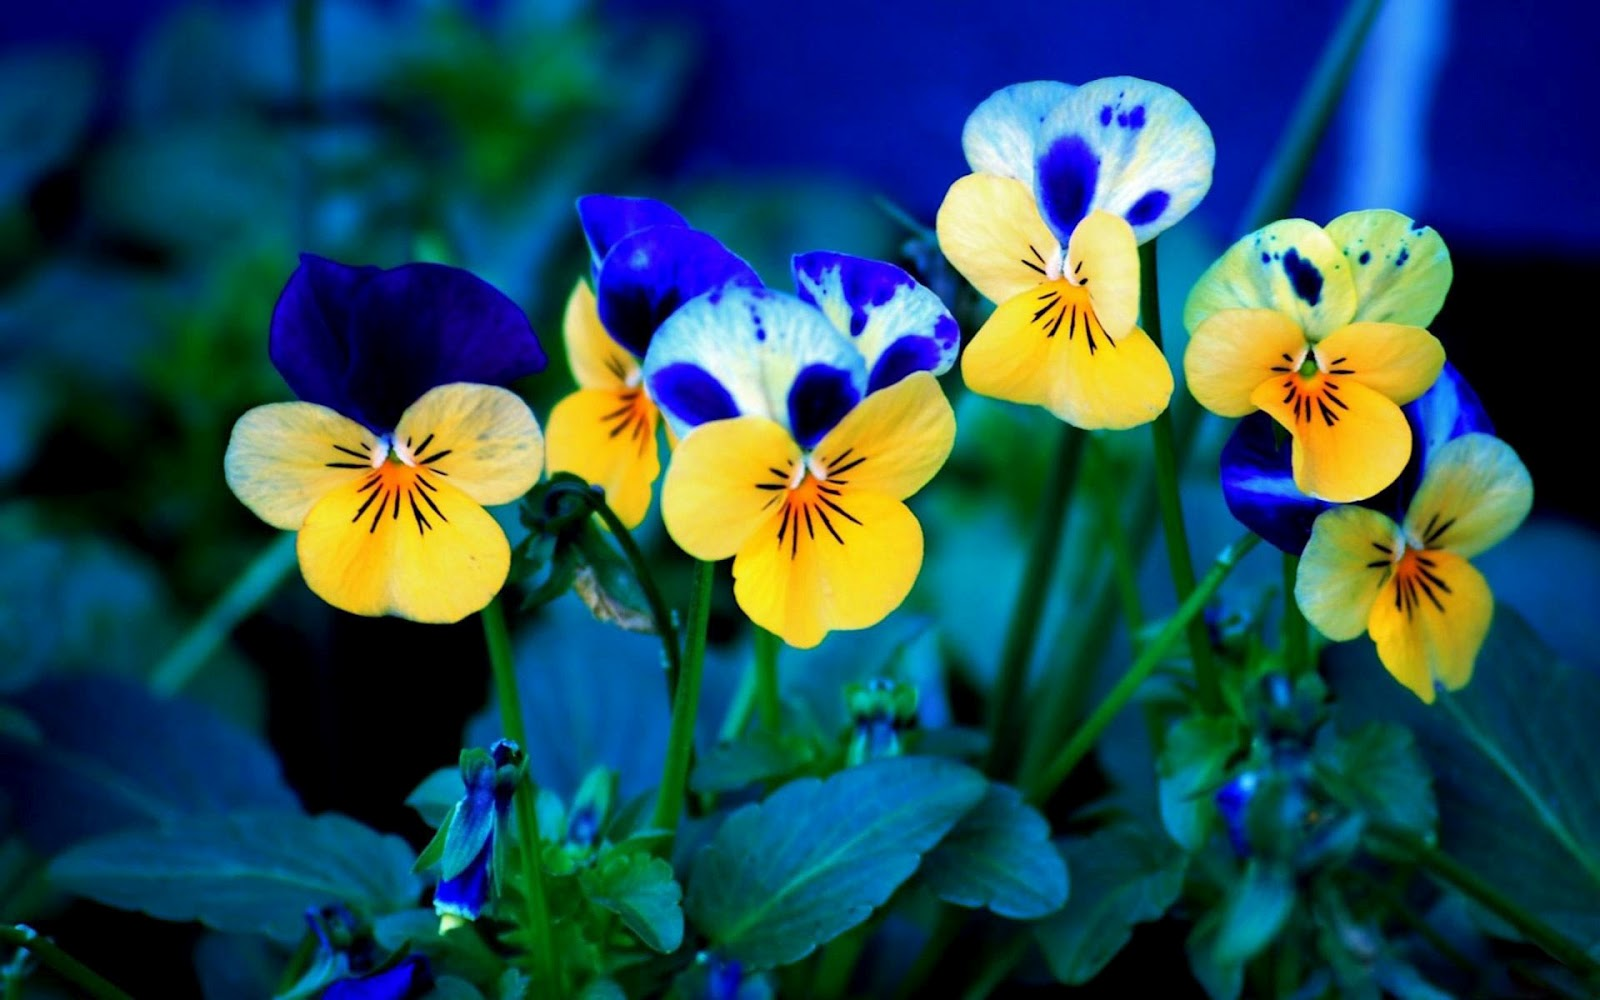 beautiful flowers nature hd download wallpaper for pc free